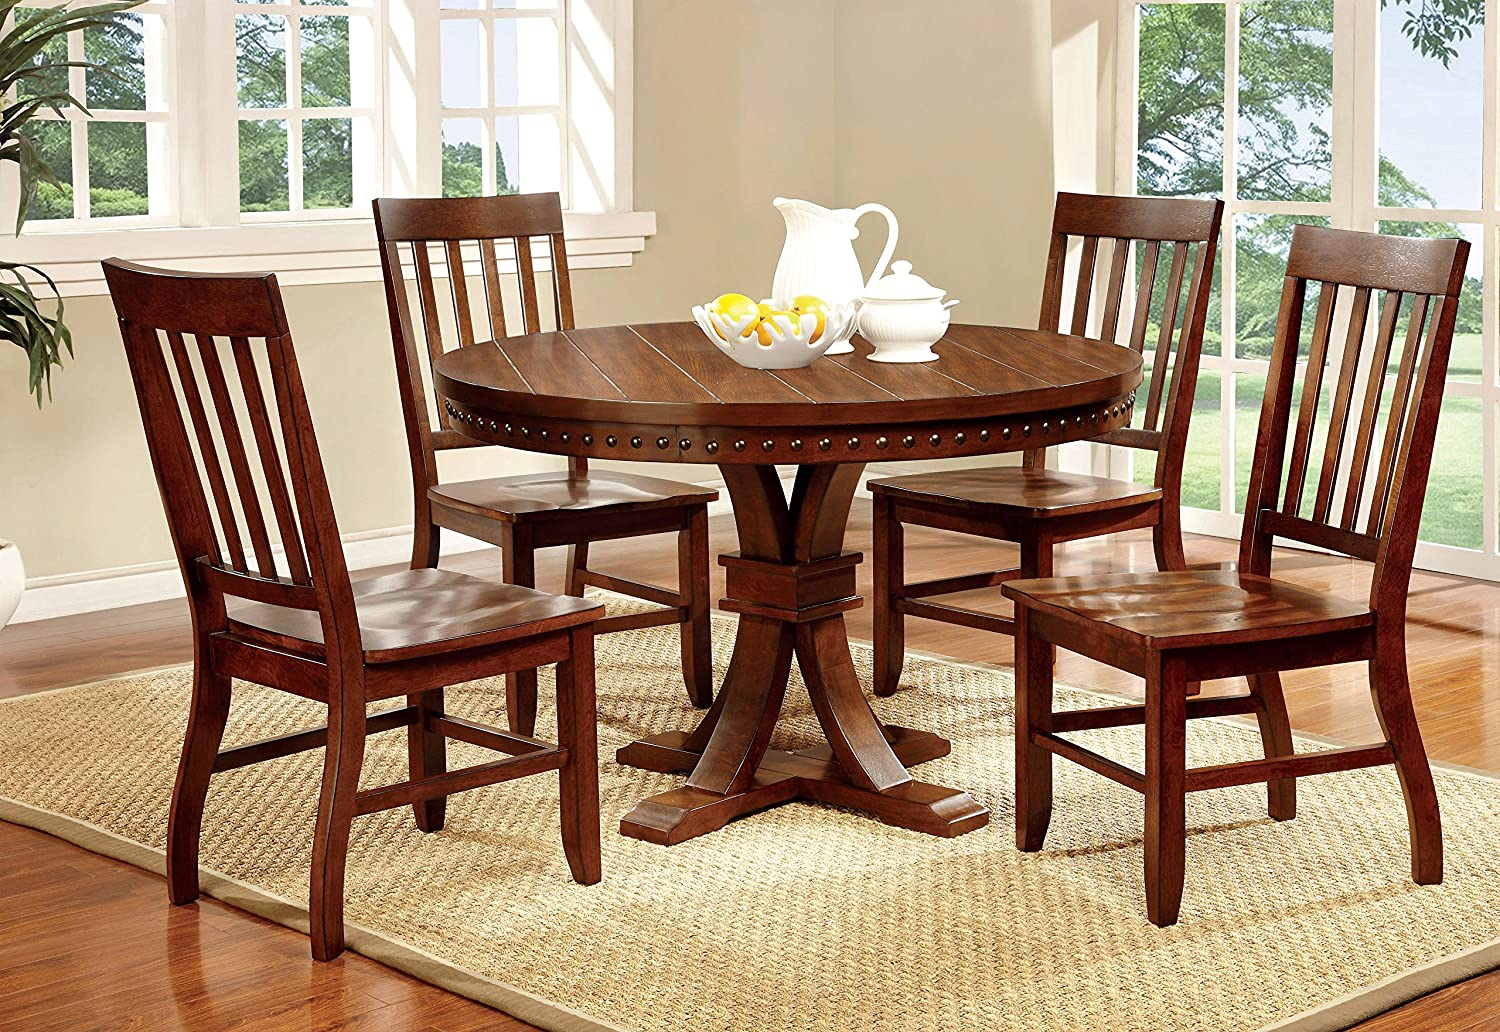 Where To Buy Small Kitchen Tables Amazon furniture of america castile 5 piece transitional round amazon furniture of america castile 5 piece transitional round dining table set dark oak table chair sets workwithnaturefo